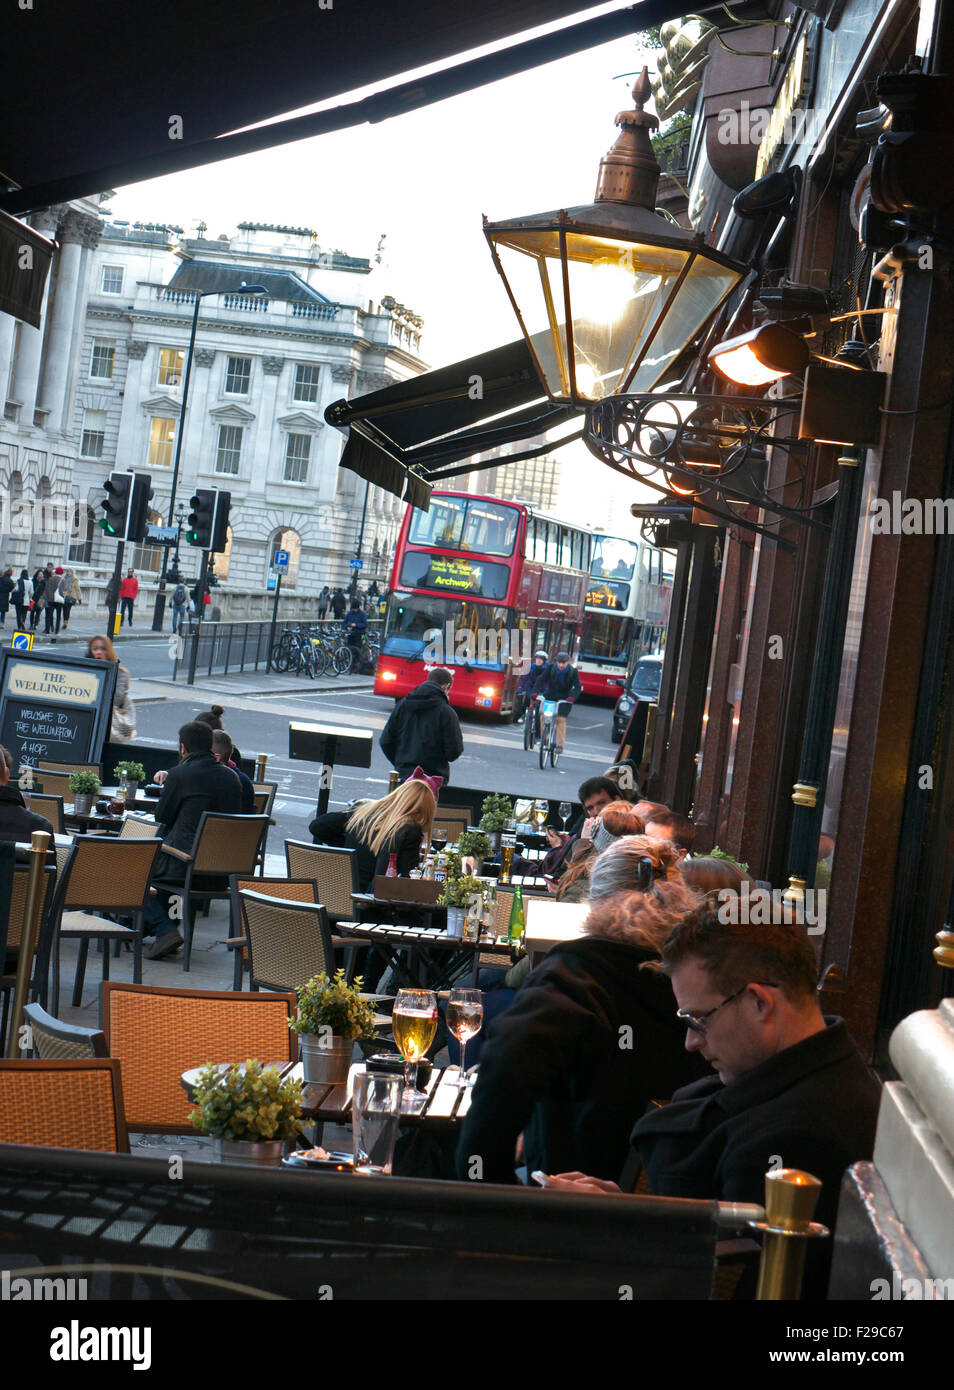 Busy central London scene at dusk with red bus cyclist commuters and typical real ale pub in foreground The Strand - Stock Image